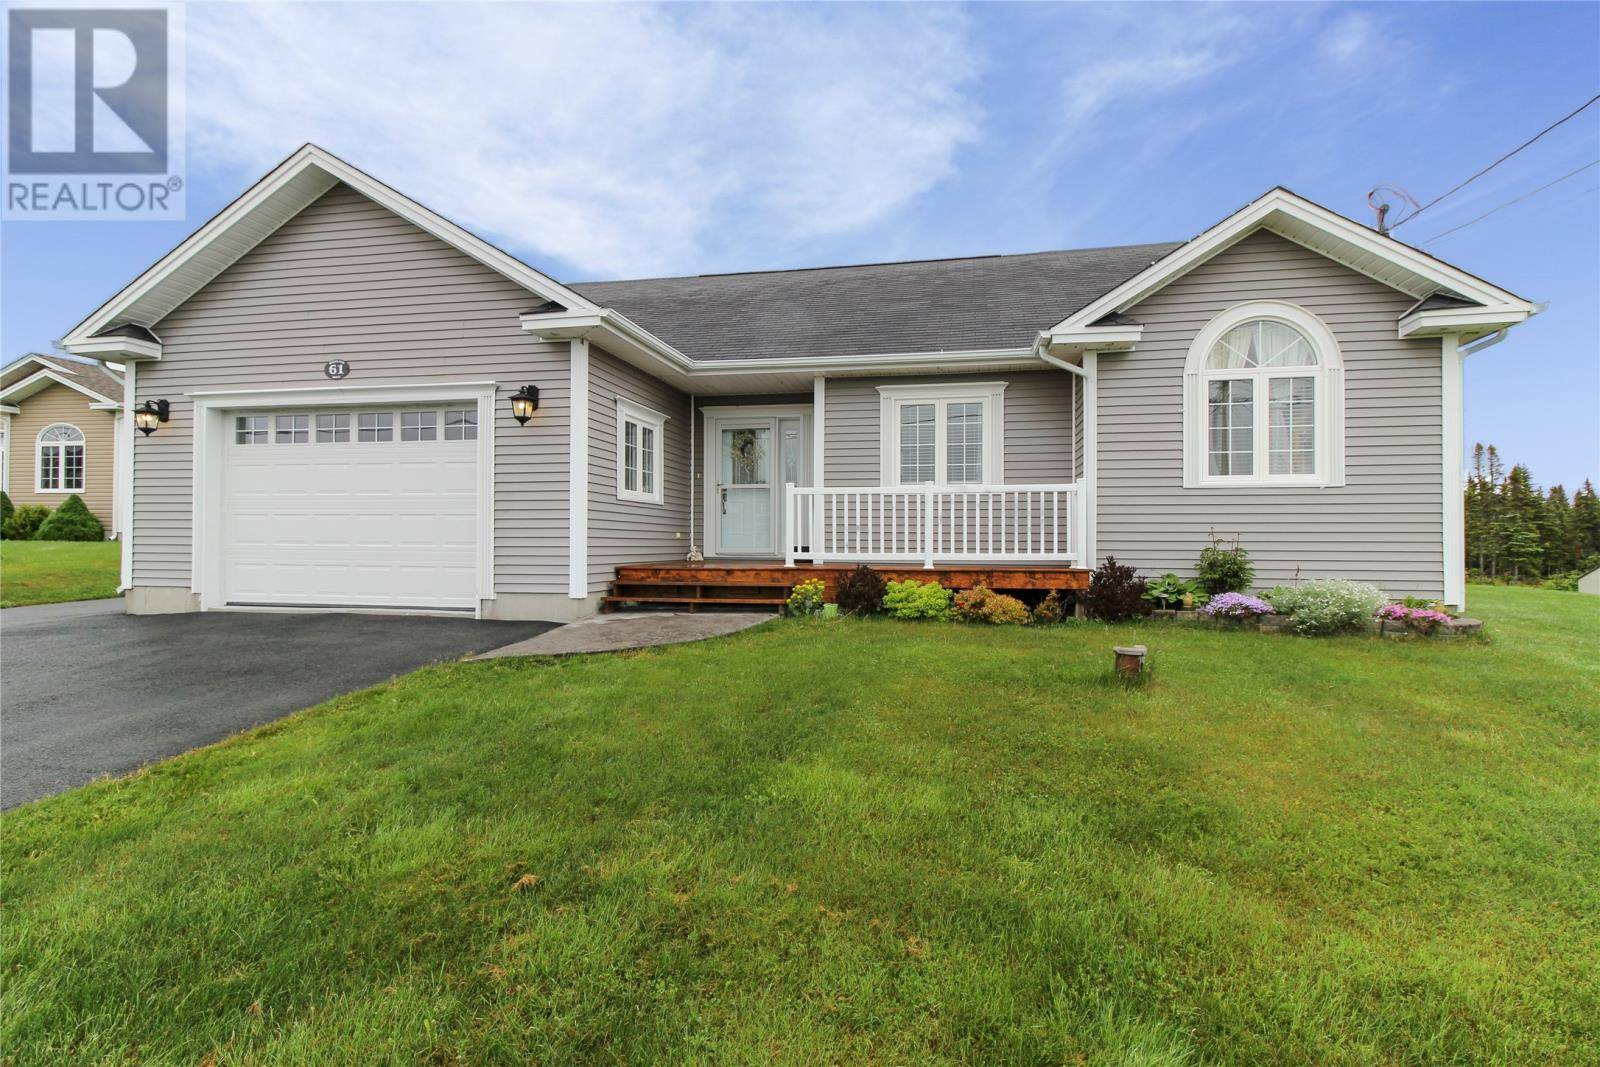 House for sale at 61 Woodland Dr Portugal Cove Newfoundland - MLS: 1199169